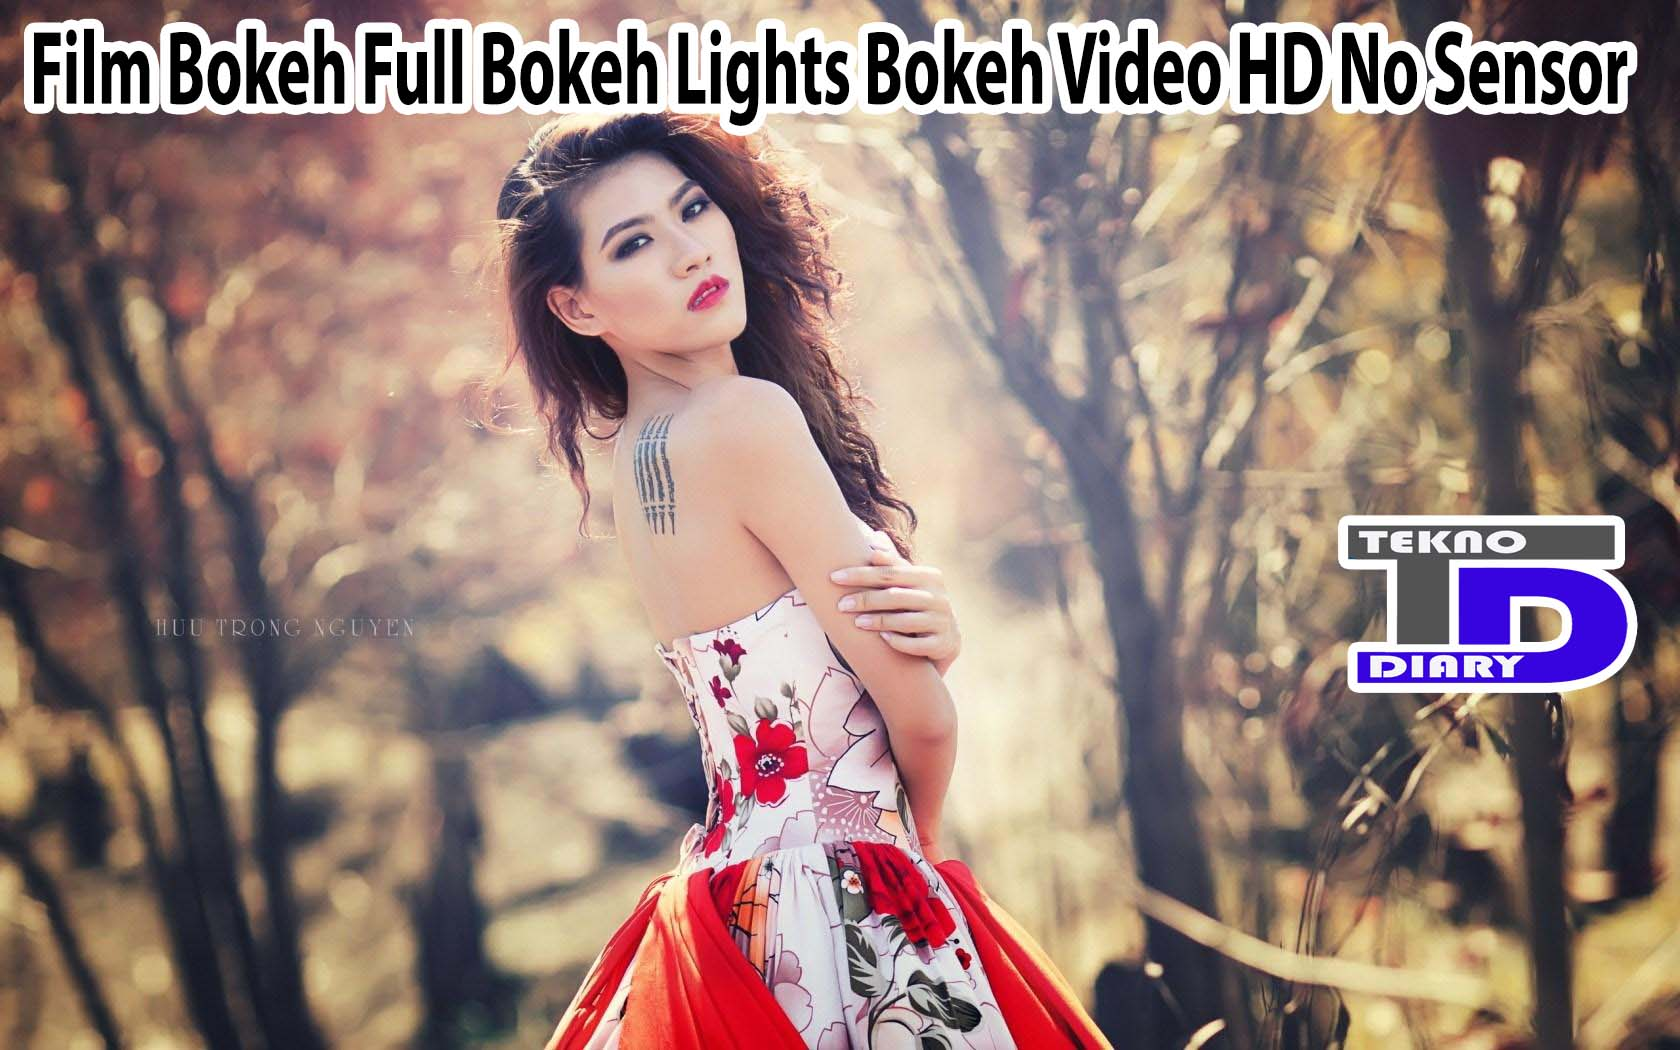 Film Bokeh Full Bokeh Lights Bokeh Video HD No Sensor